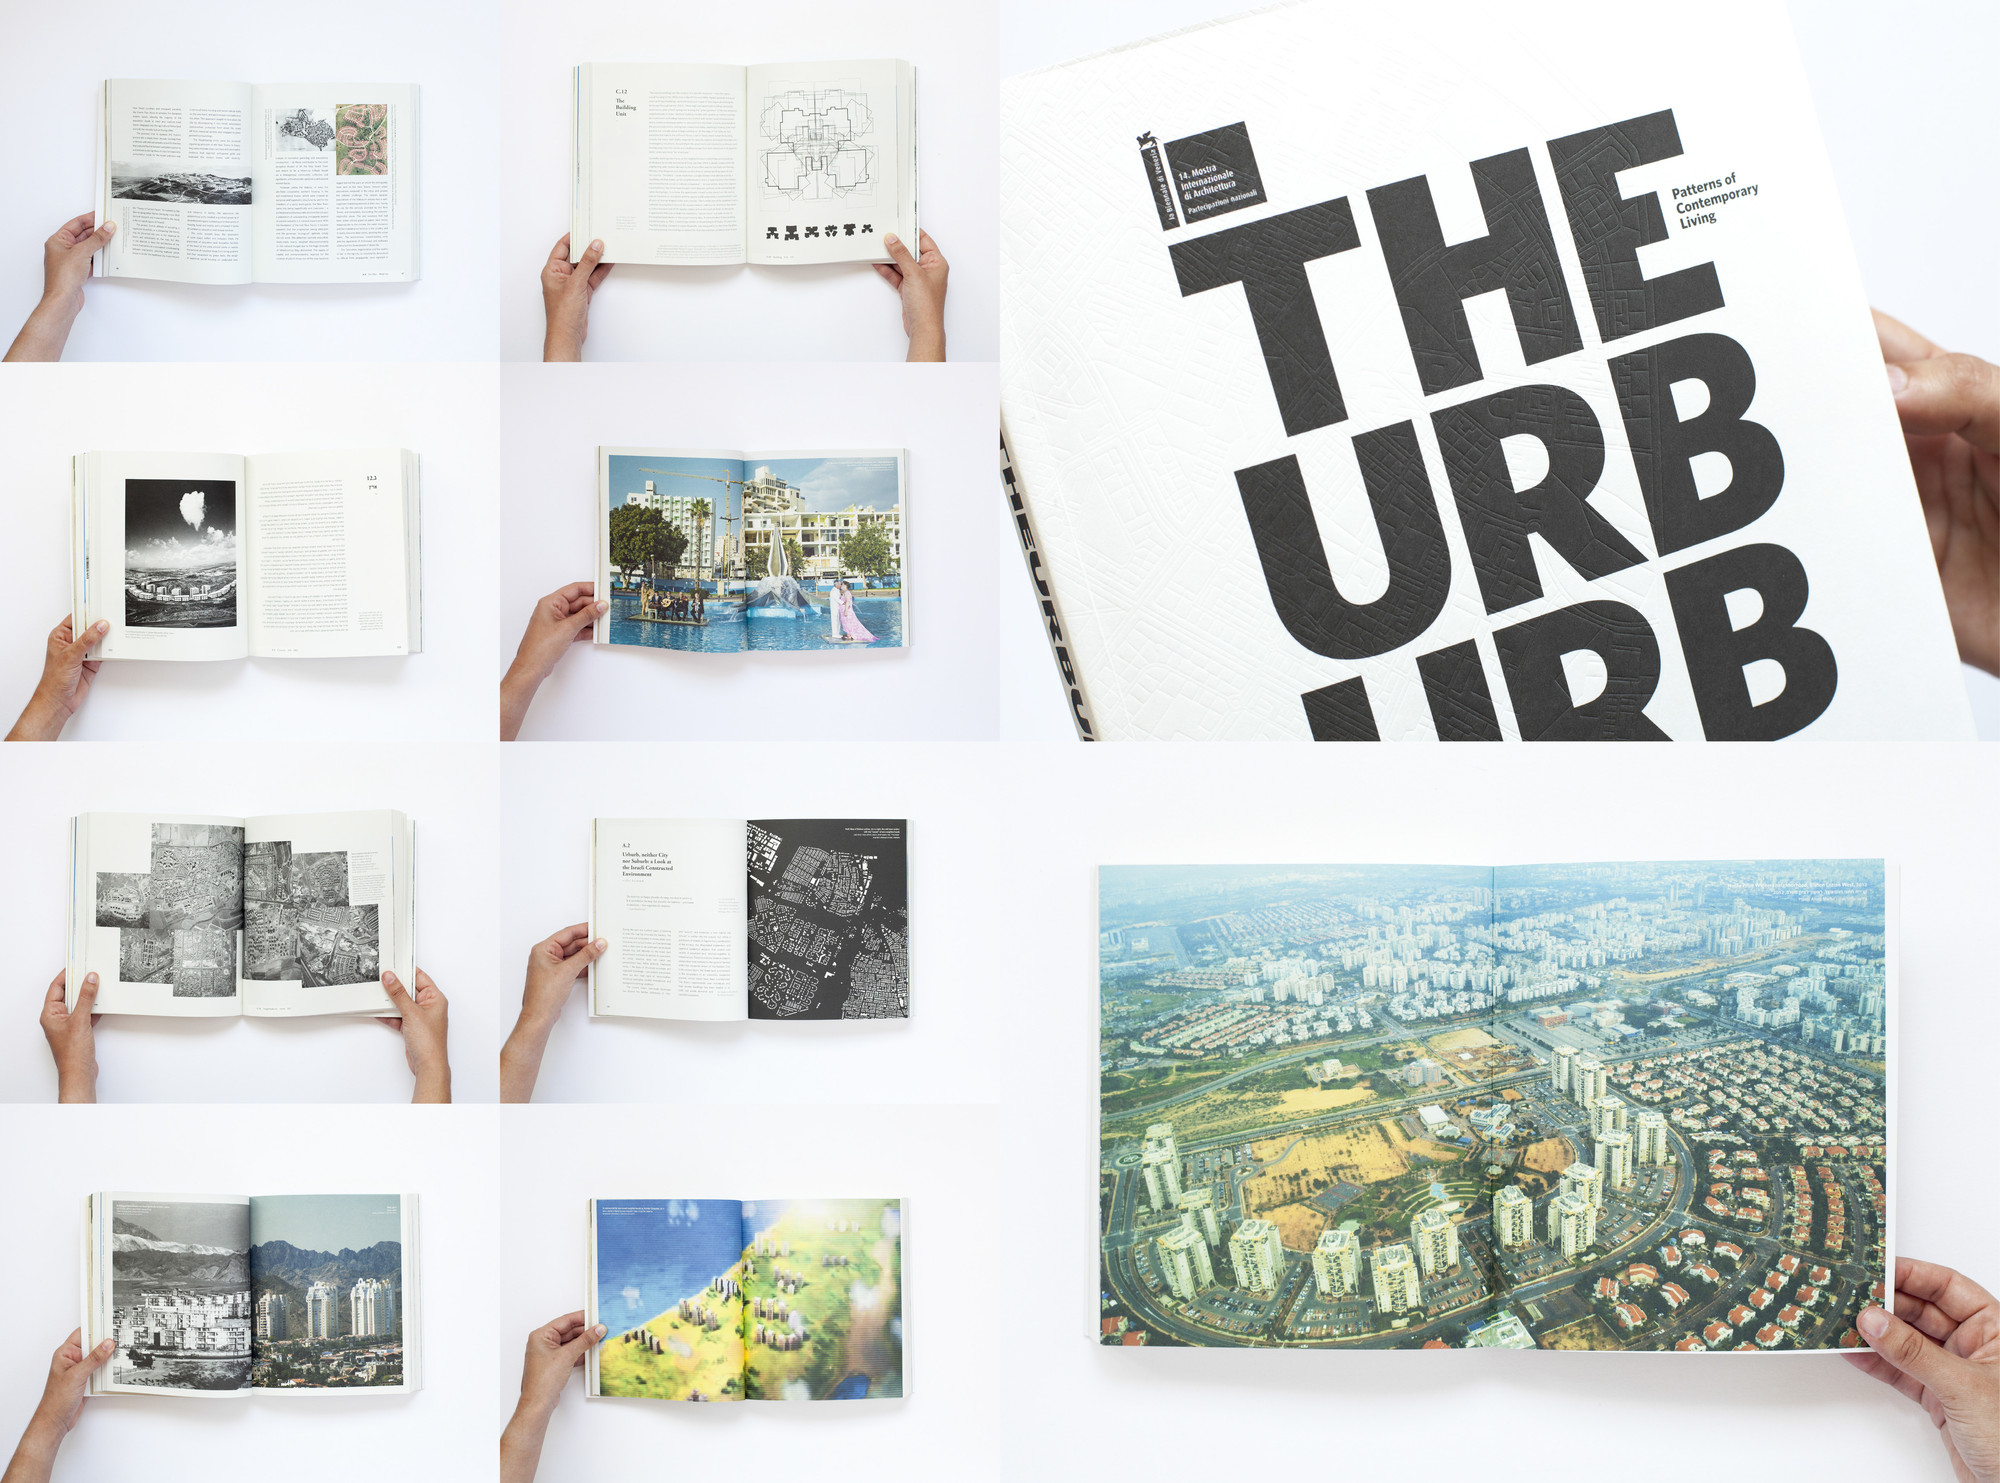 Publication: The Urburb – Patterns of Contemporaty Living